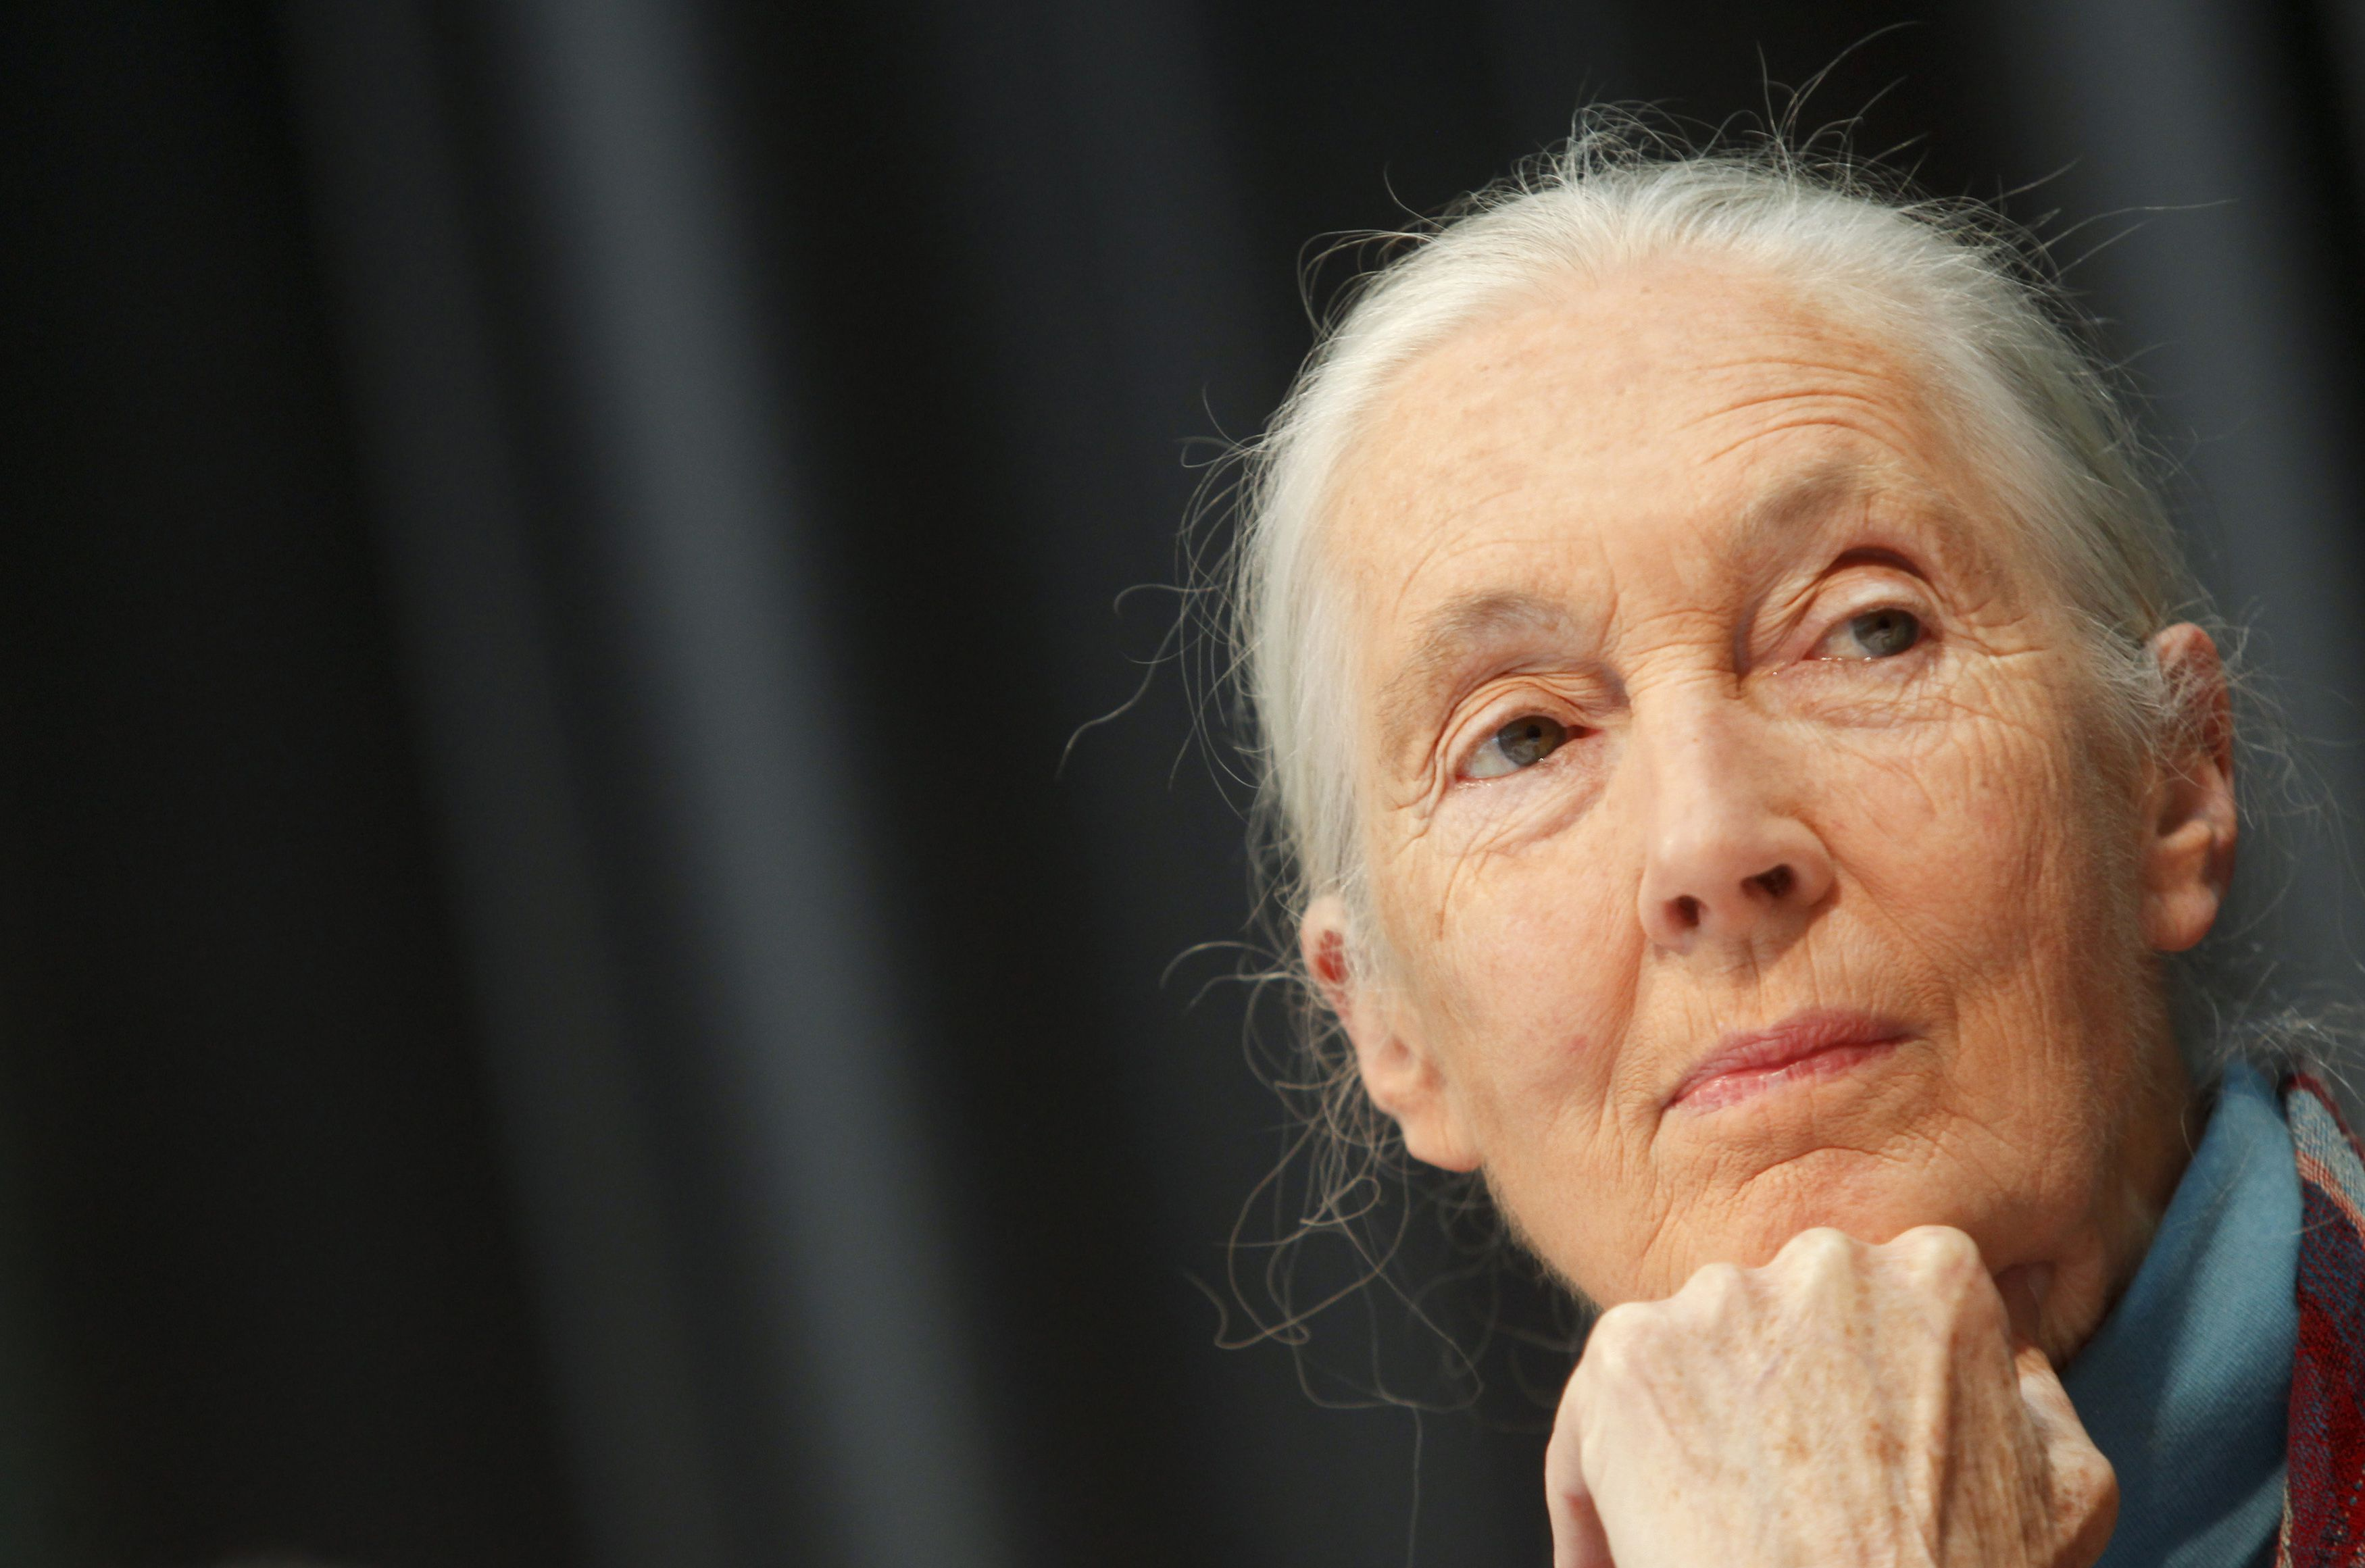 British primatologist, ethologist and anthropologist Jane Goodall listens to a journalist's question during a news conference at Vienna's Schoenbrunn Zoo June 18, 2010.  REUTERS/Herwig Prammer (AUSTRIA - Tags: SOCIETY HEADSHOT) - RTR2FC9R